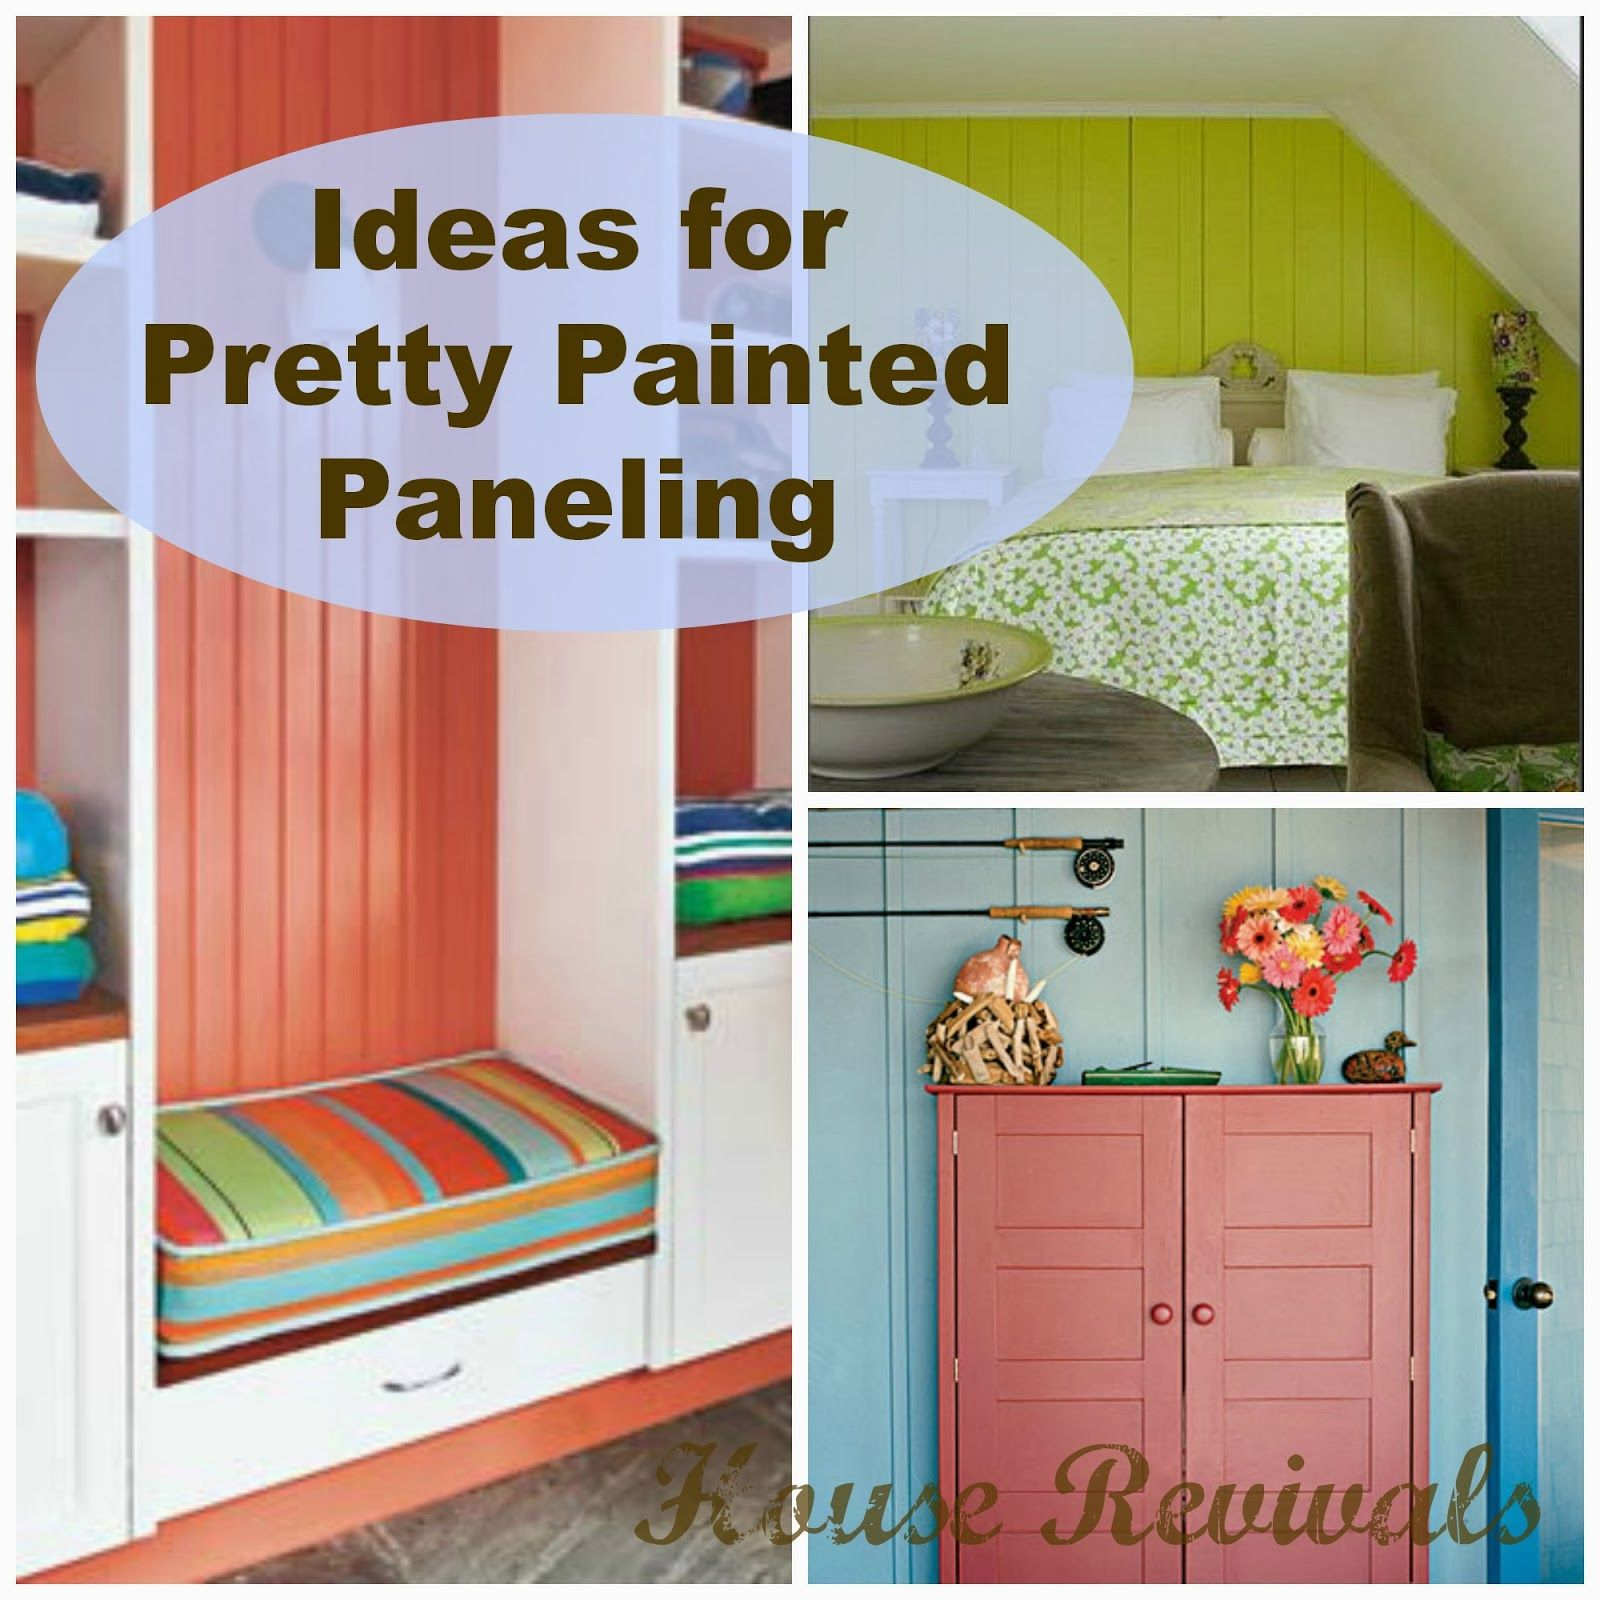 brightly painted furniture. House Revivals: Colorful Painted Paneling Brightly Furniture